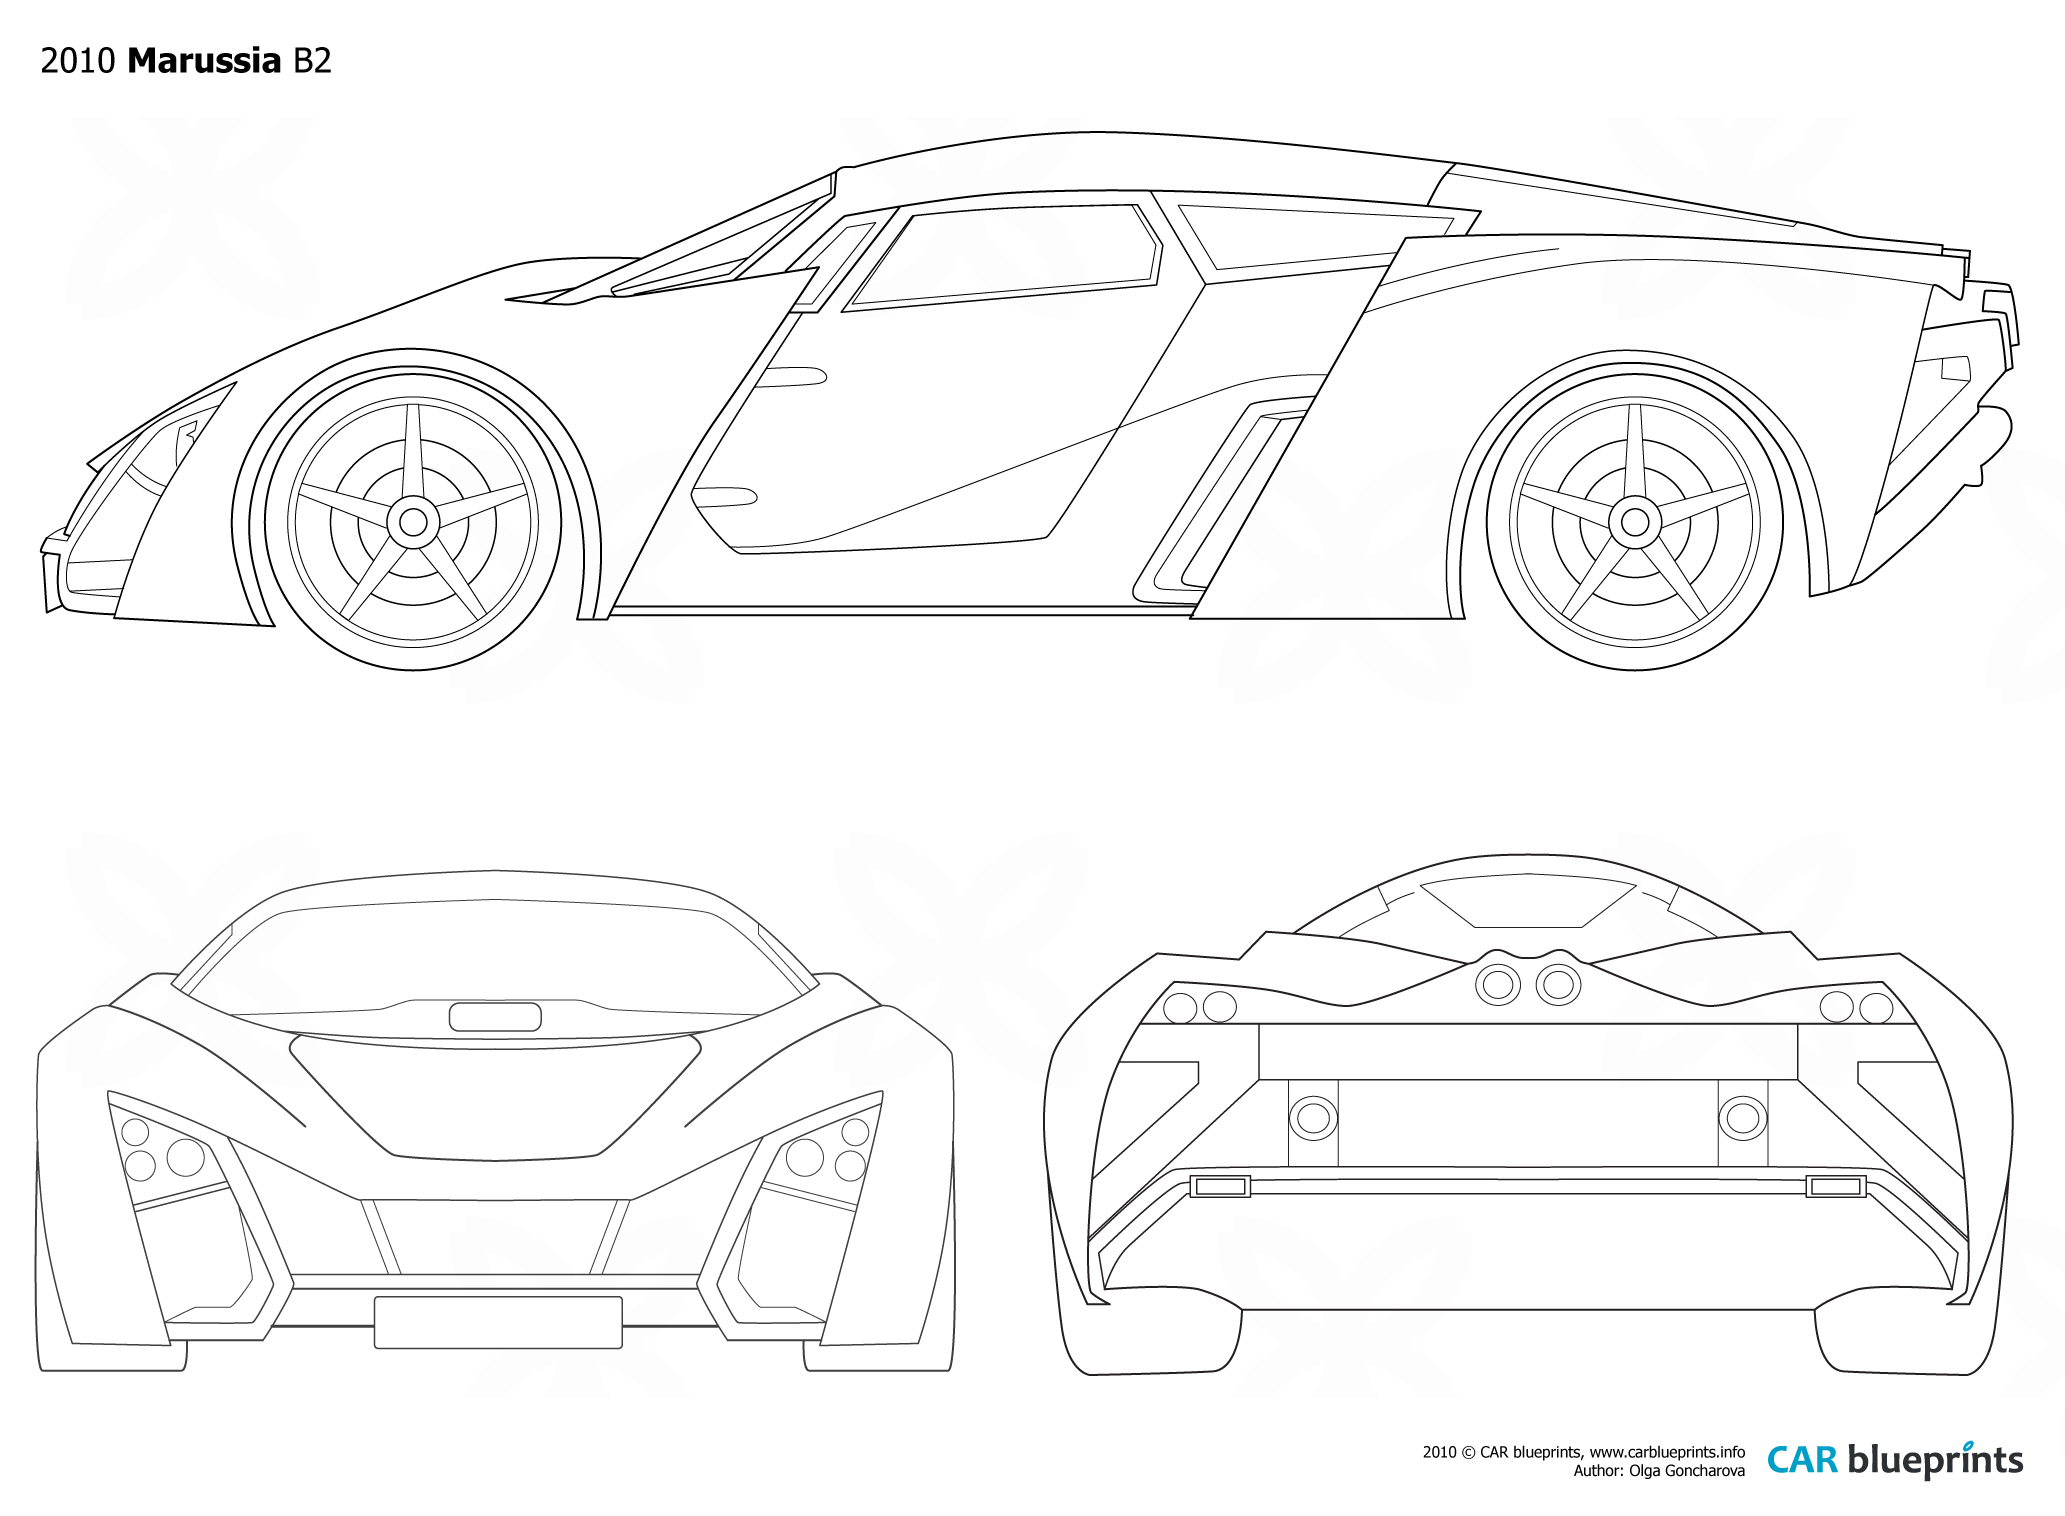 Car Blueprints Marussia Blueprints Vector Drawings Clipart